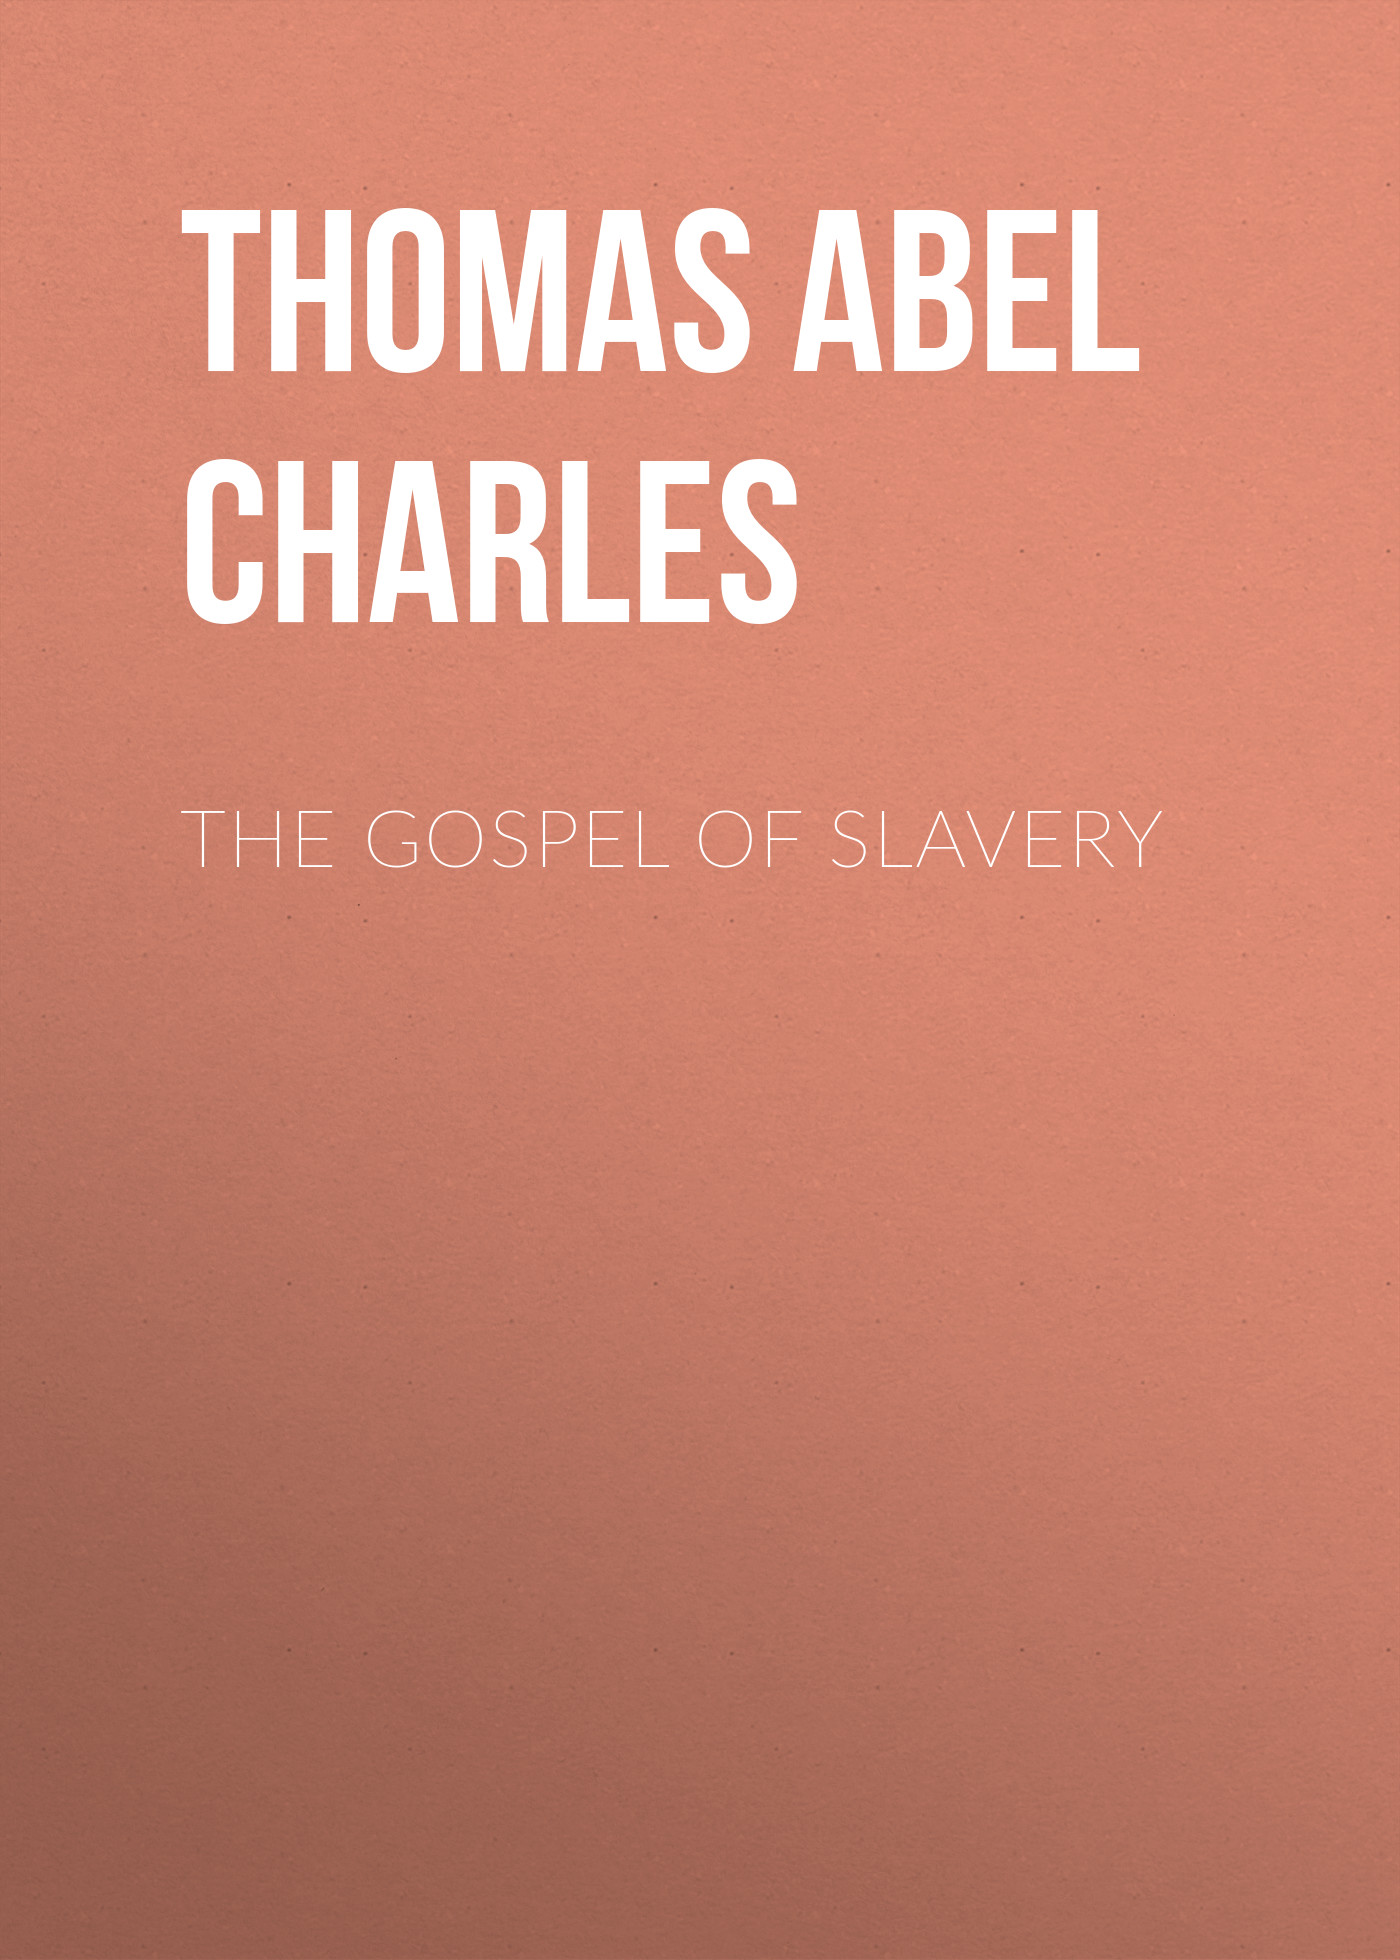 цена на Thomas Abel Charles The Gospel of Slavery